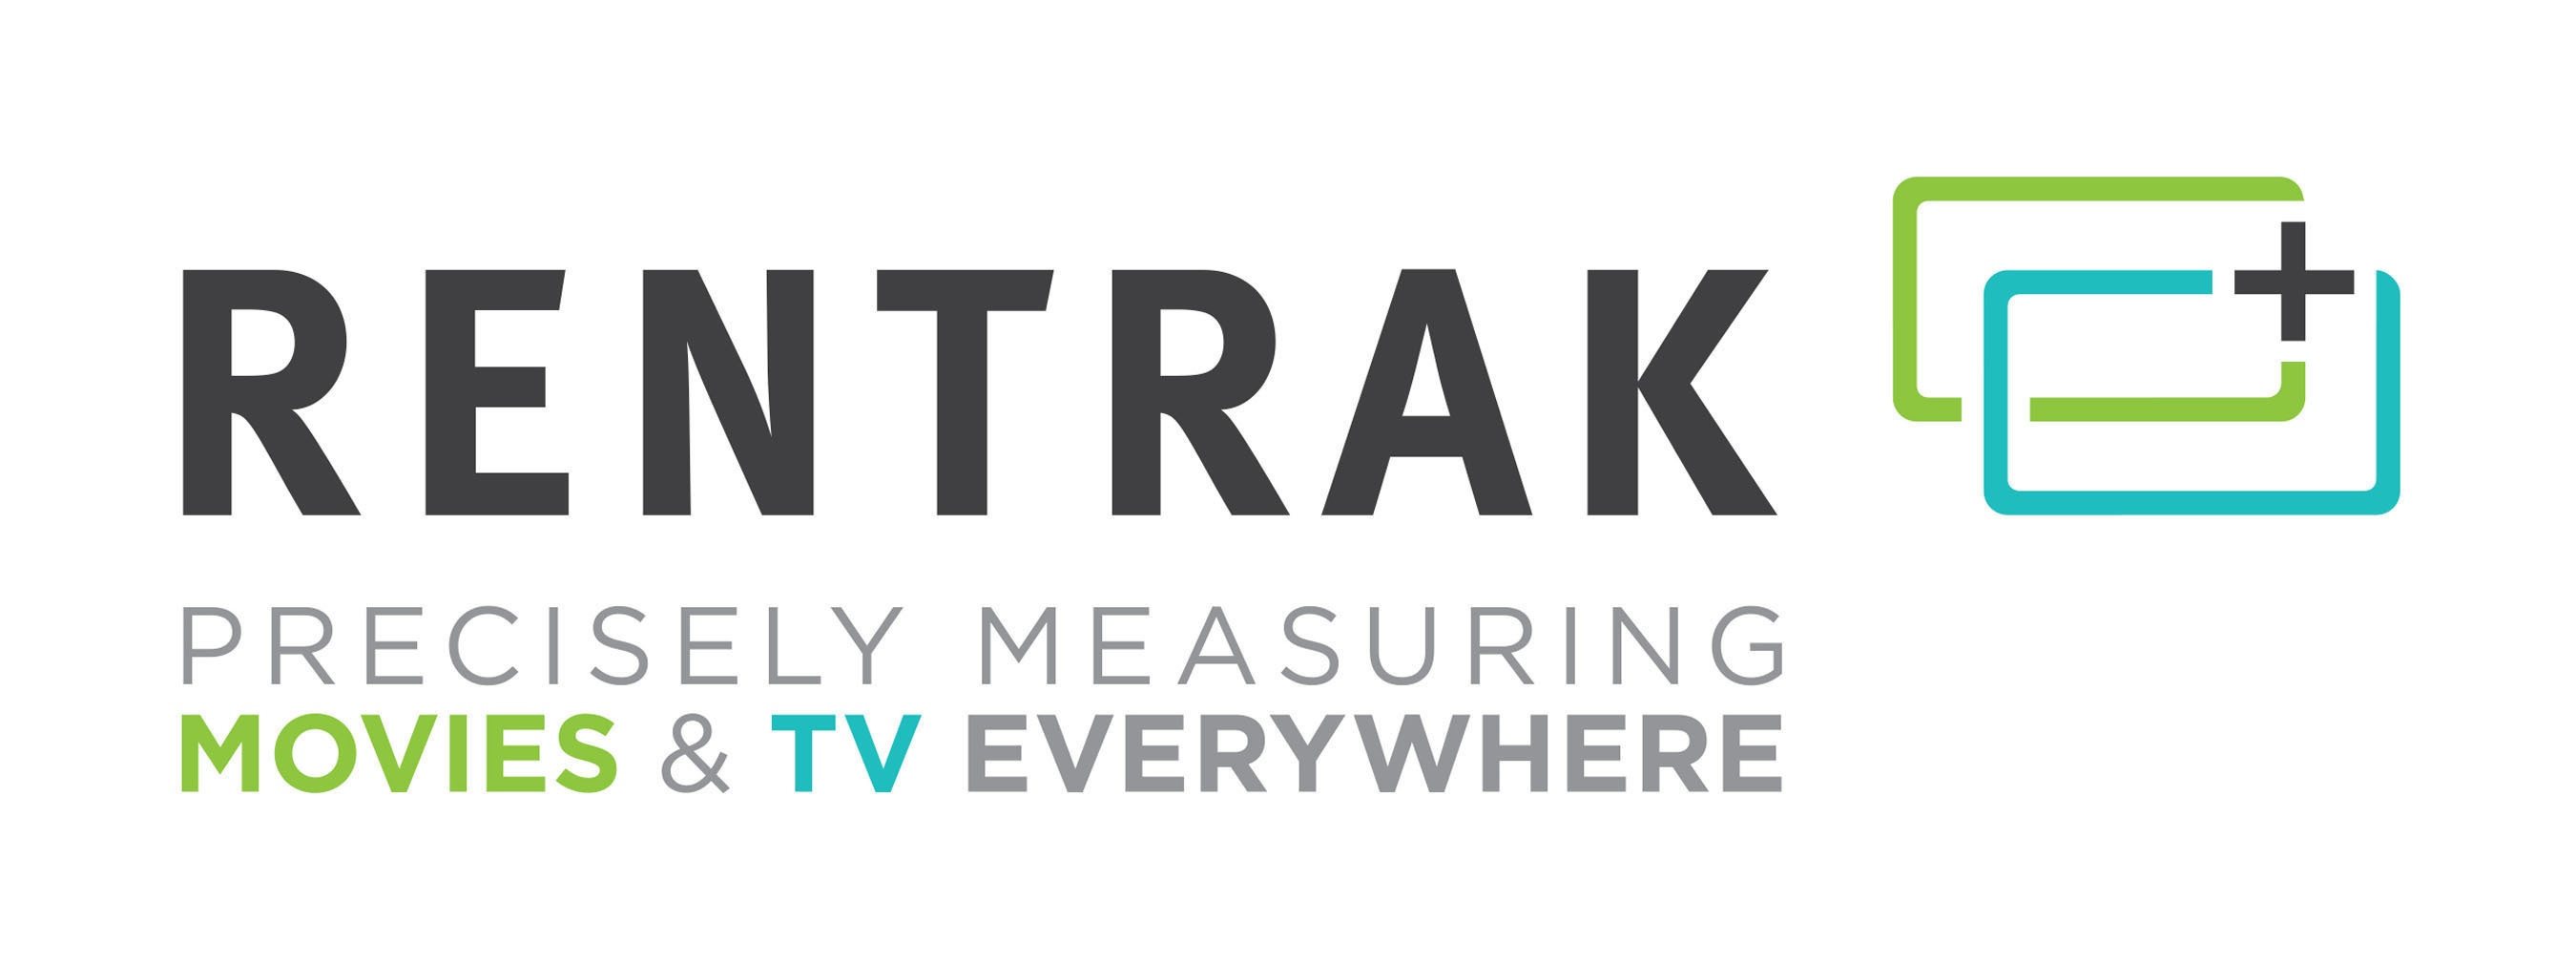 Rentrak Announces Official Worldwide Box Office Results for Weekend of May 24, 2015